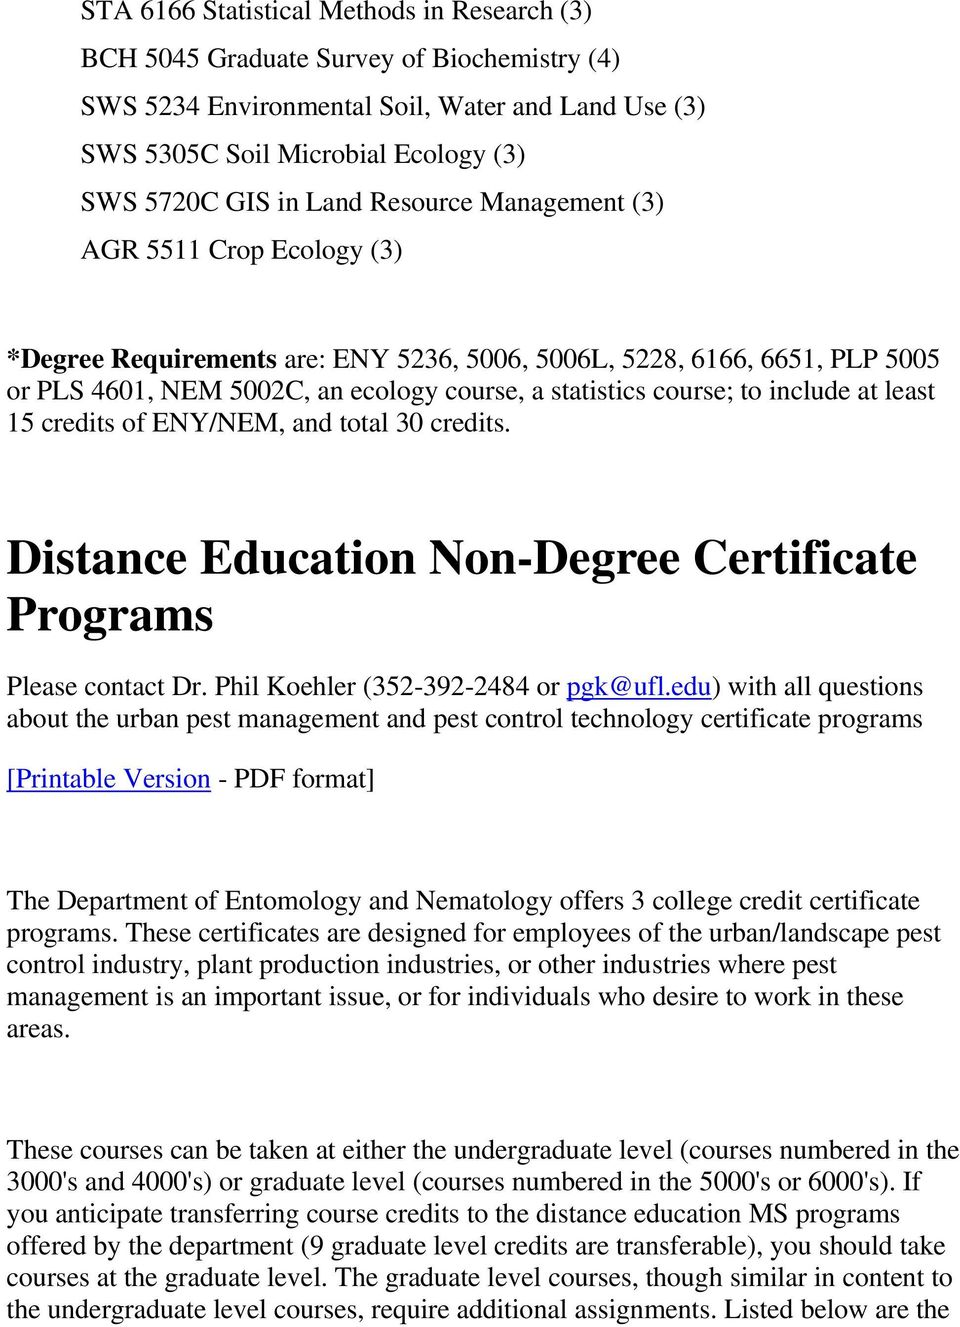 include at least 15 credits of ENY/NEM, and total 30 credits. Distance Education Non-Degree Certificate Programs Please contact Dr. Phil Koehler (352-392-2484 or pgk@ufl.